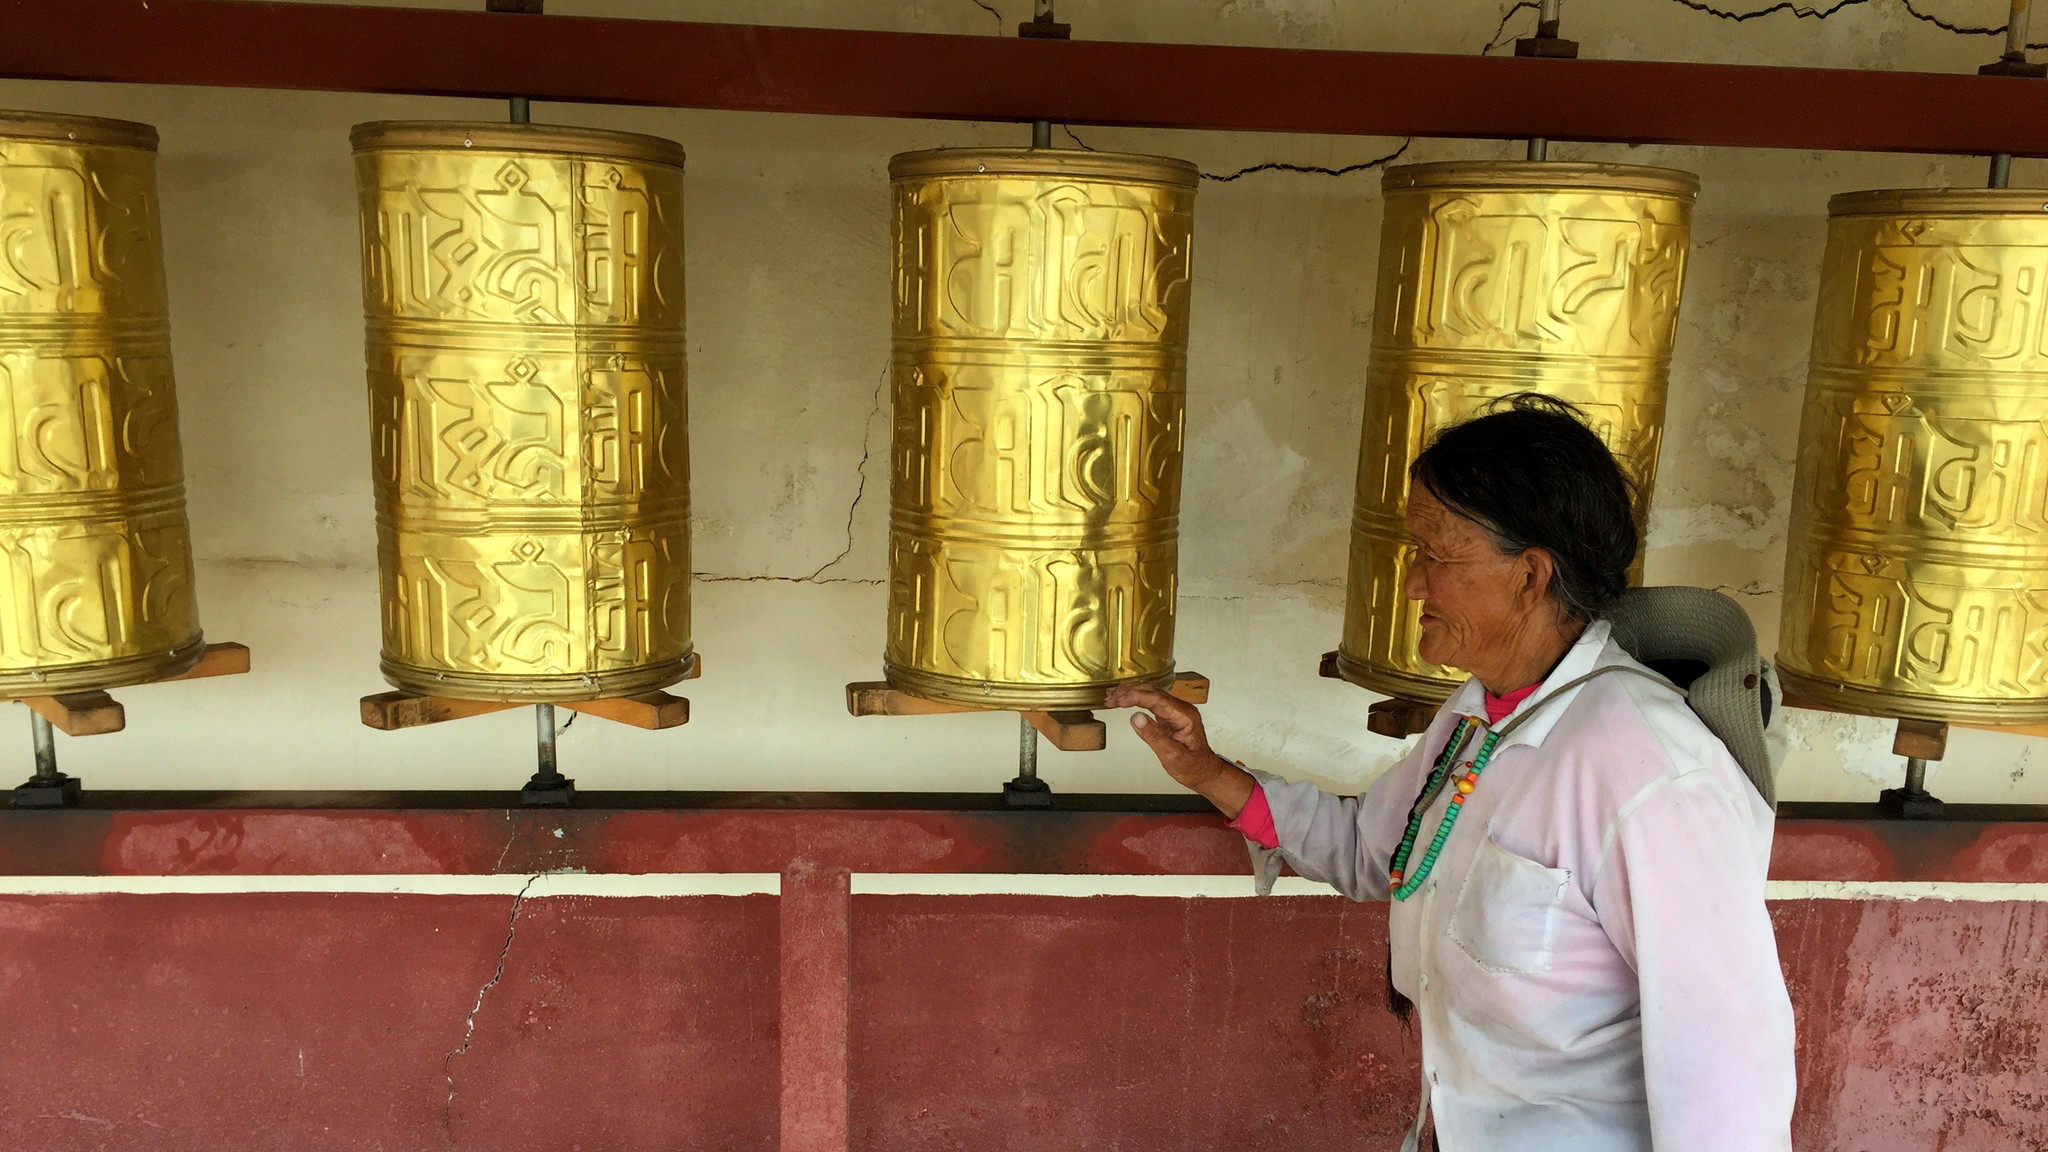 A Tibetan woman spins prayer wheels at a roadside tourist attraction in Aba prefecture.